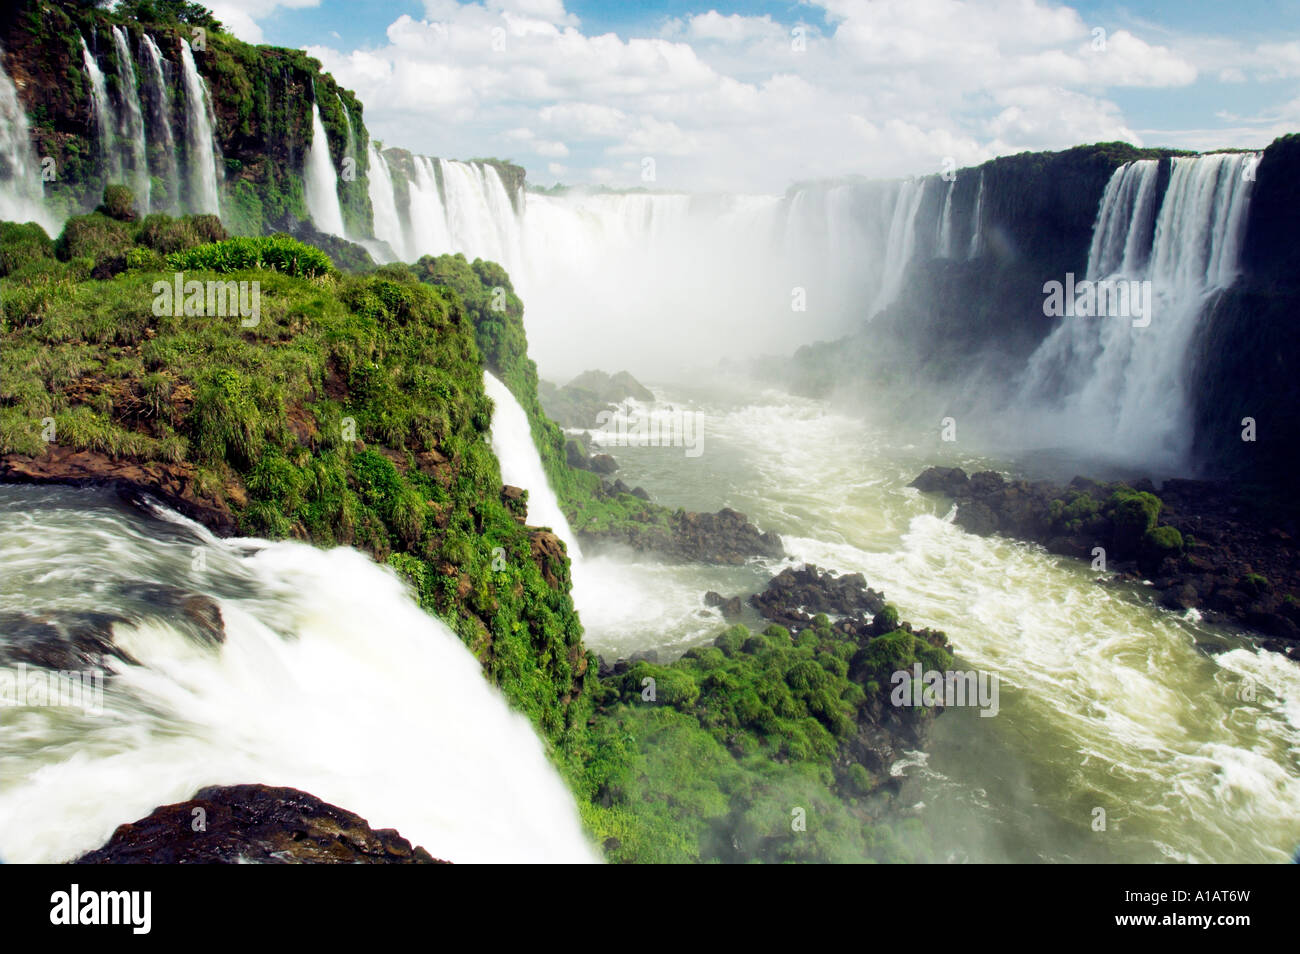 The Iguassu Falls  Devils Throat and the Iguassu river gorge as viewed from the Brazilian side. - Stock Image